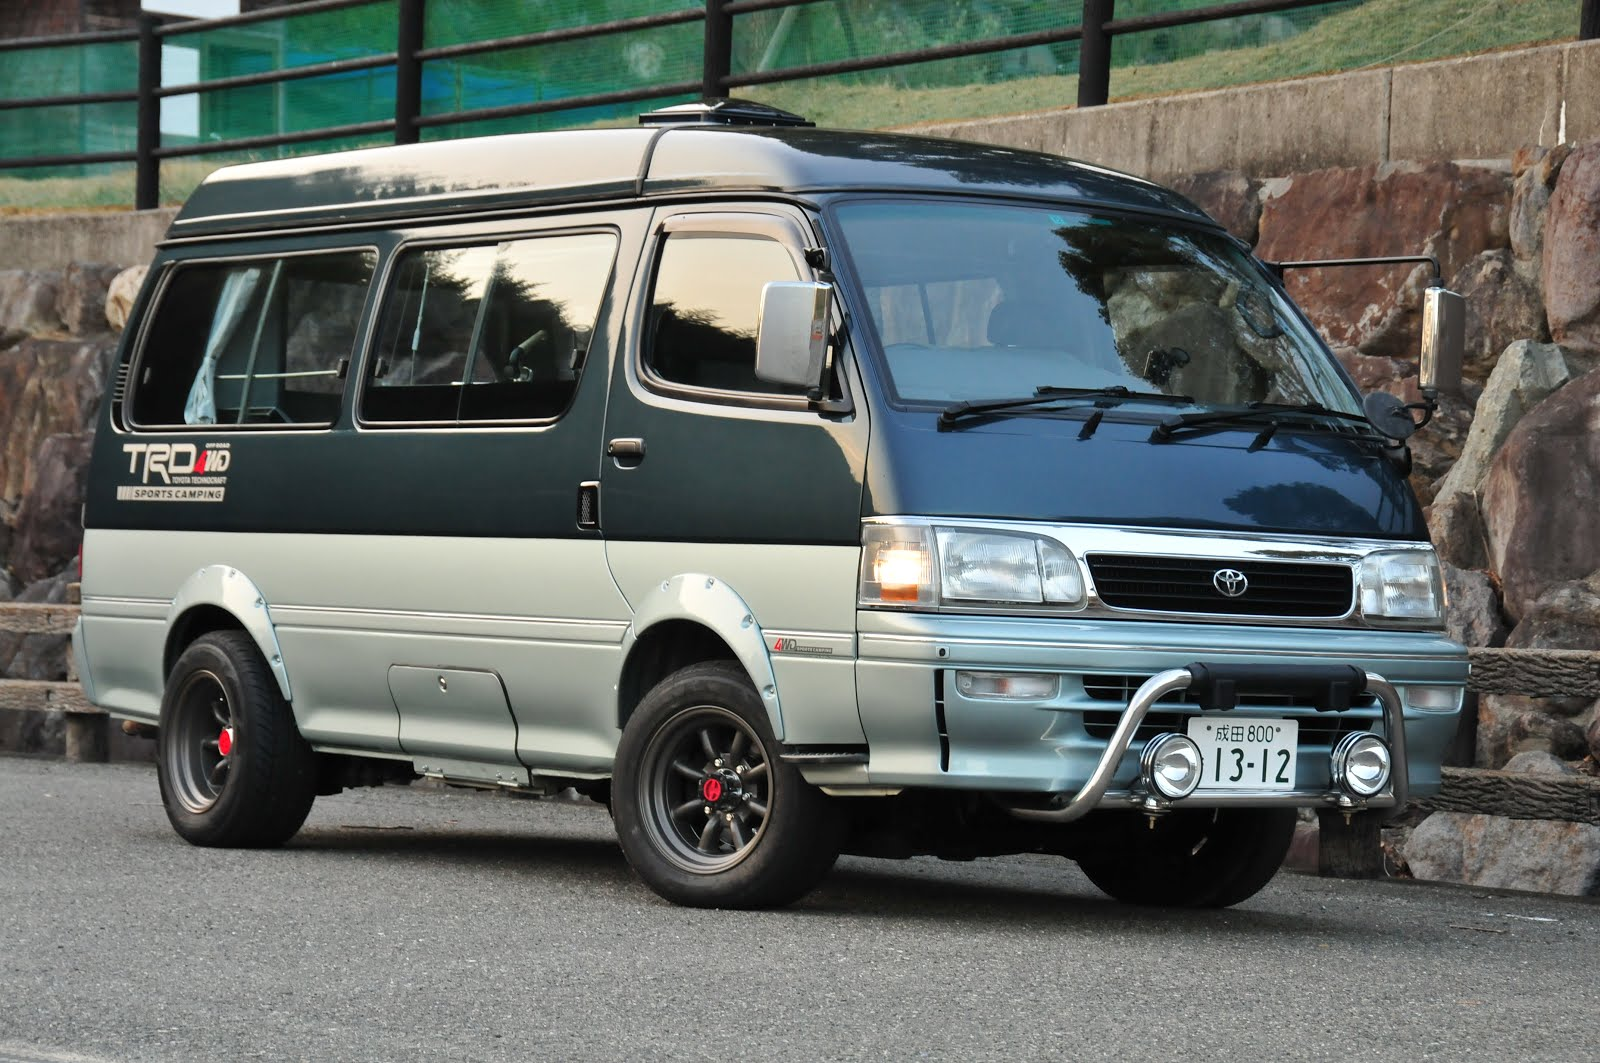 This is a picture of how the hiace looks like today following a restoration that took nearly a year at a friends paint shop in chiba and more recent